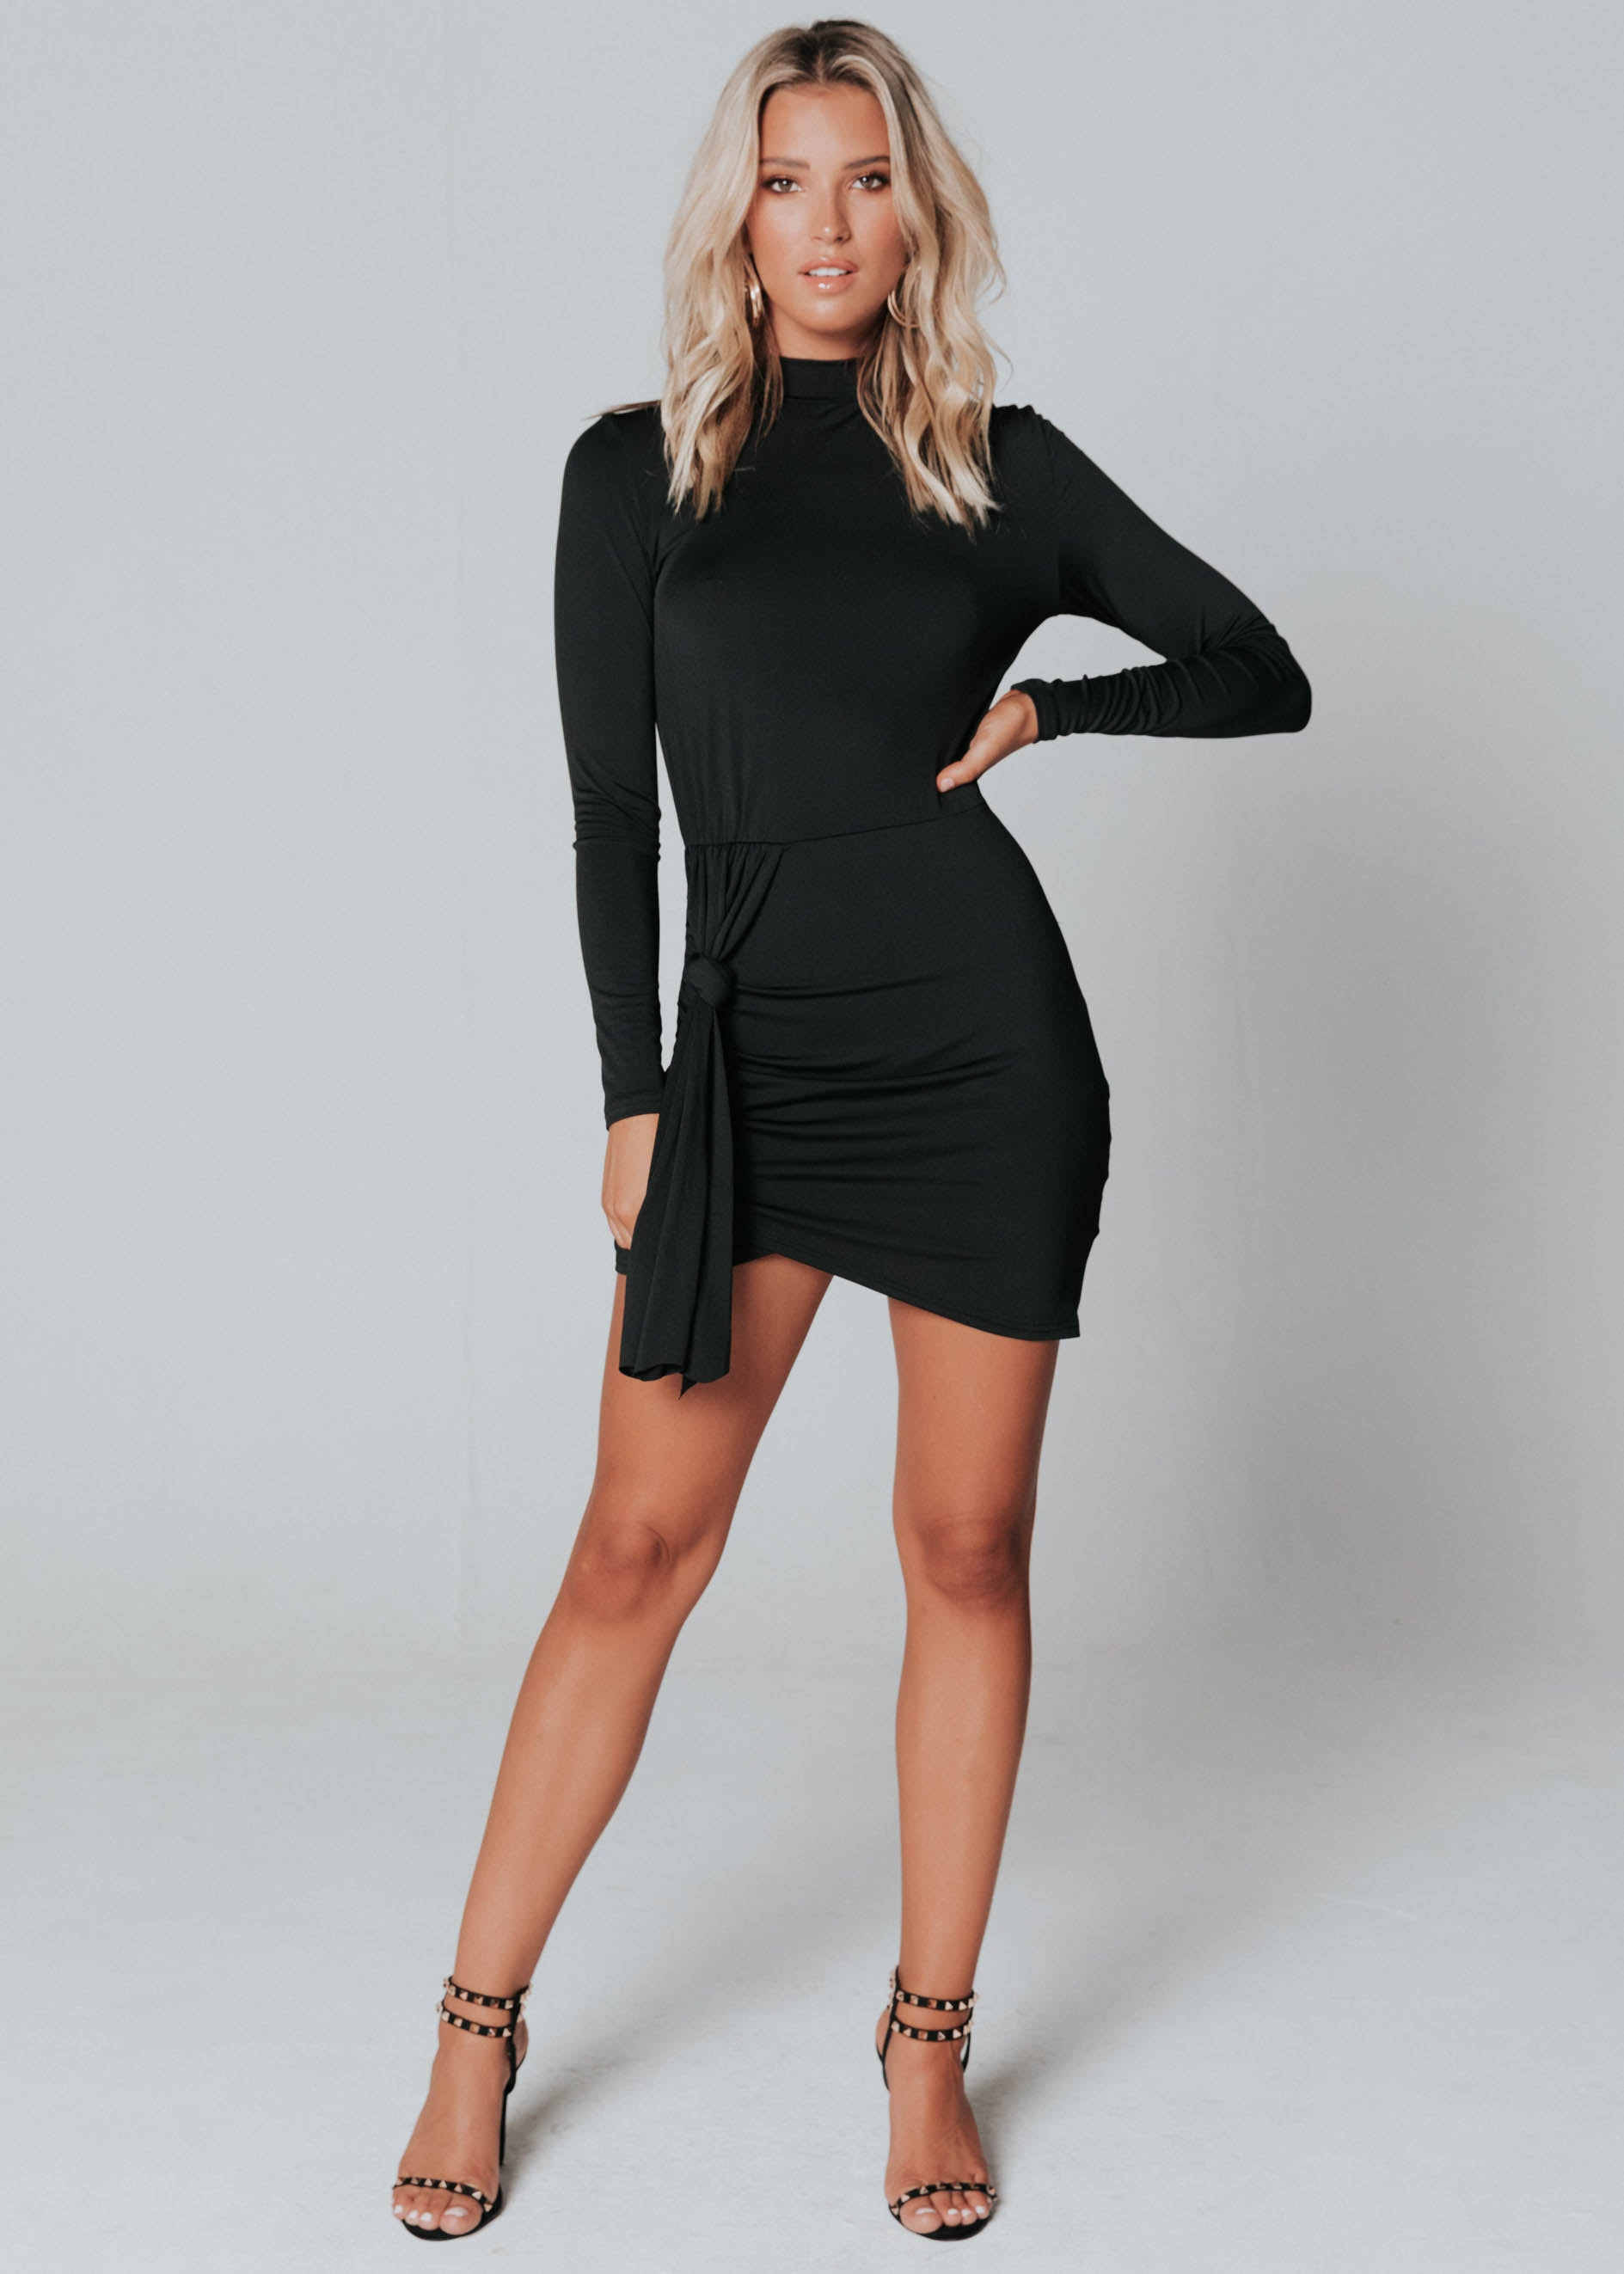 Tongue Tied Mini Dress - Black